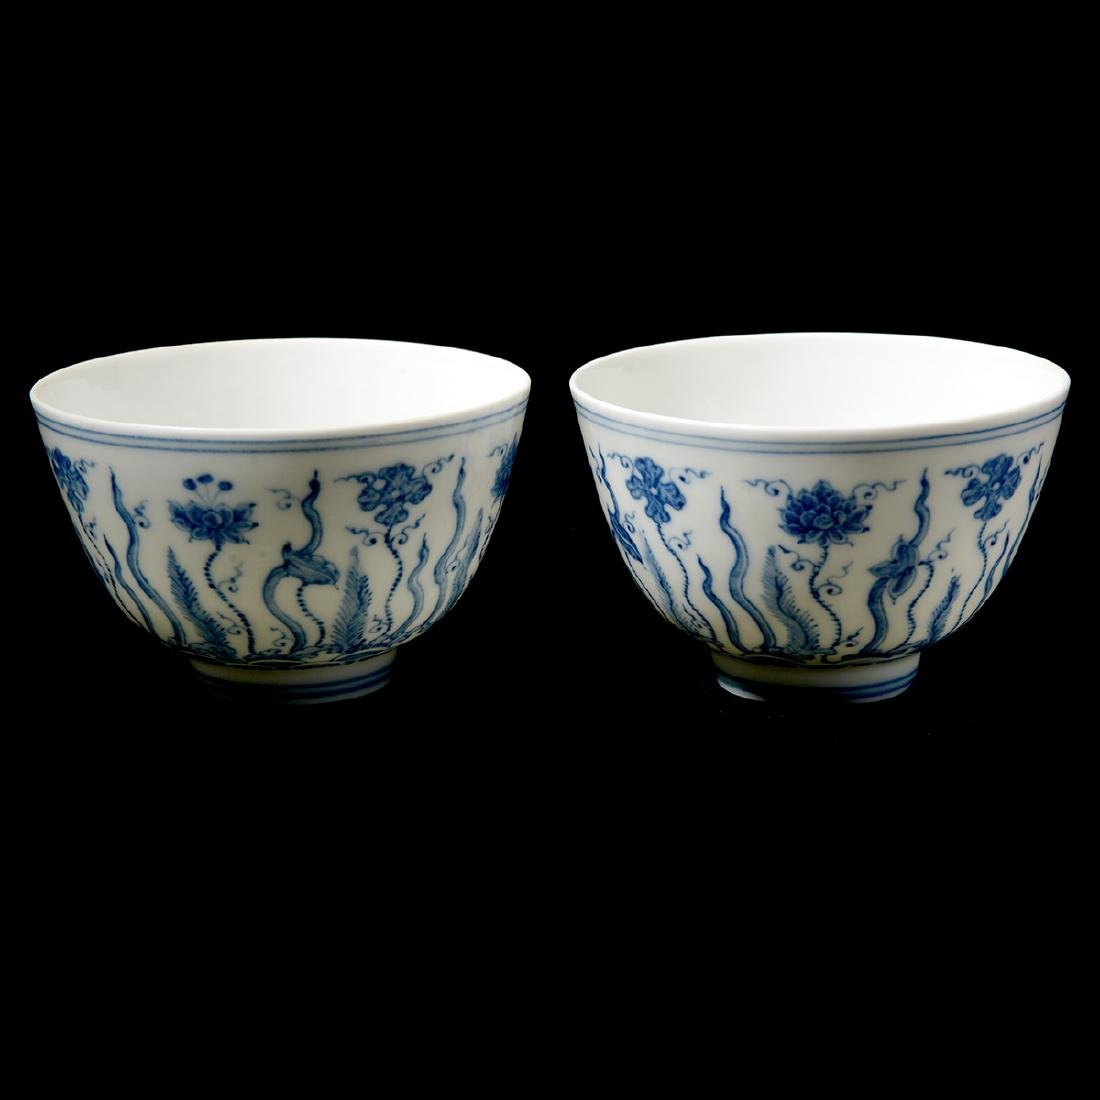 Pair of Chinese Blue and White Porcelain Tea Bowls